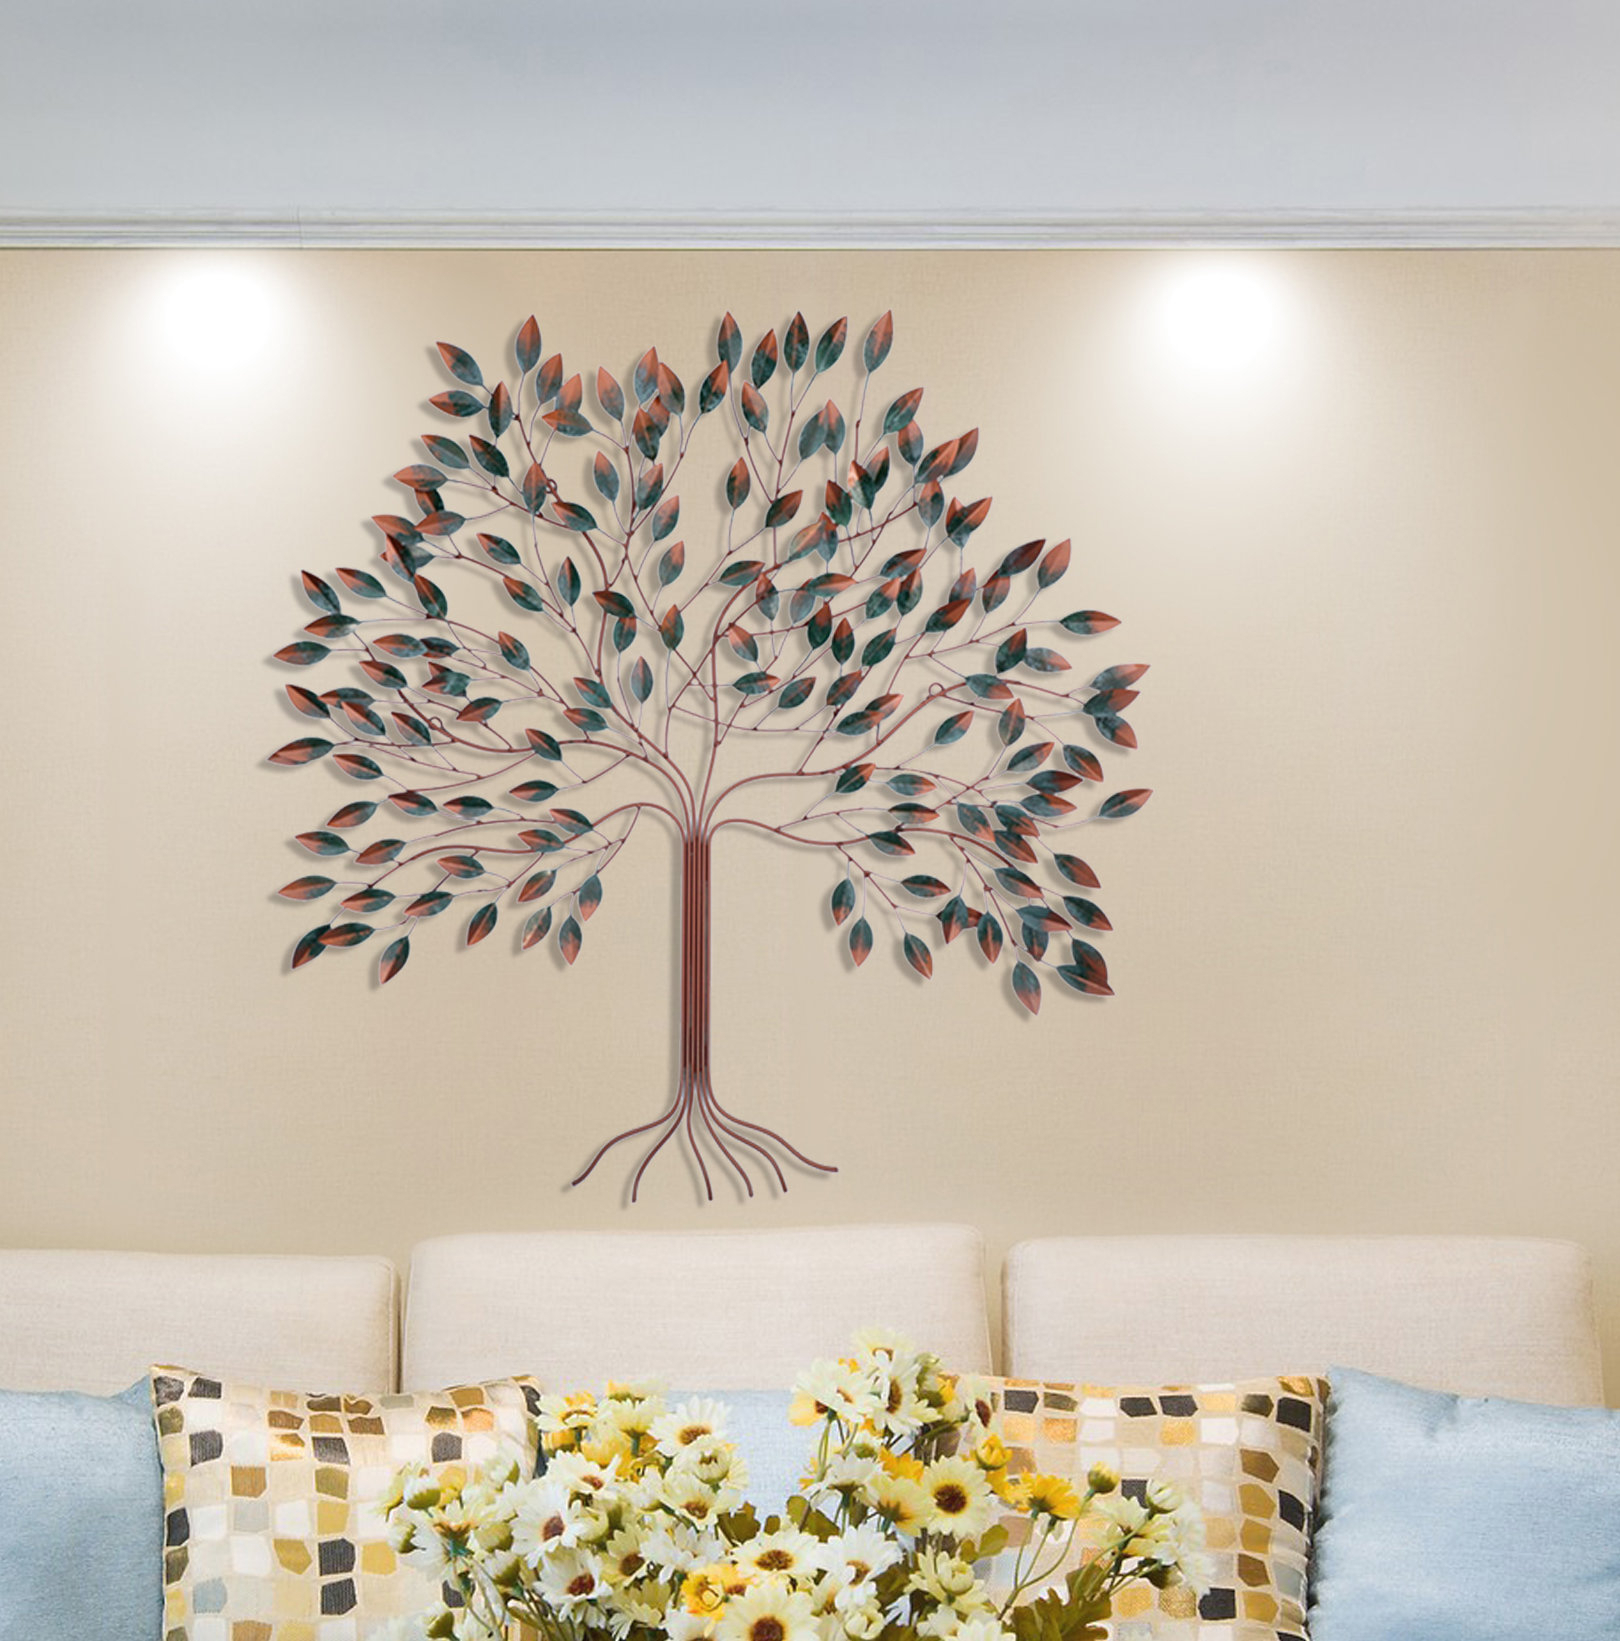 Tree Of Life Wall Décor Intended For Tree Of Life Wall Decor (View 2 of 30)